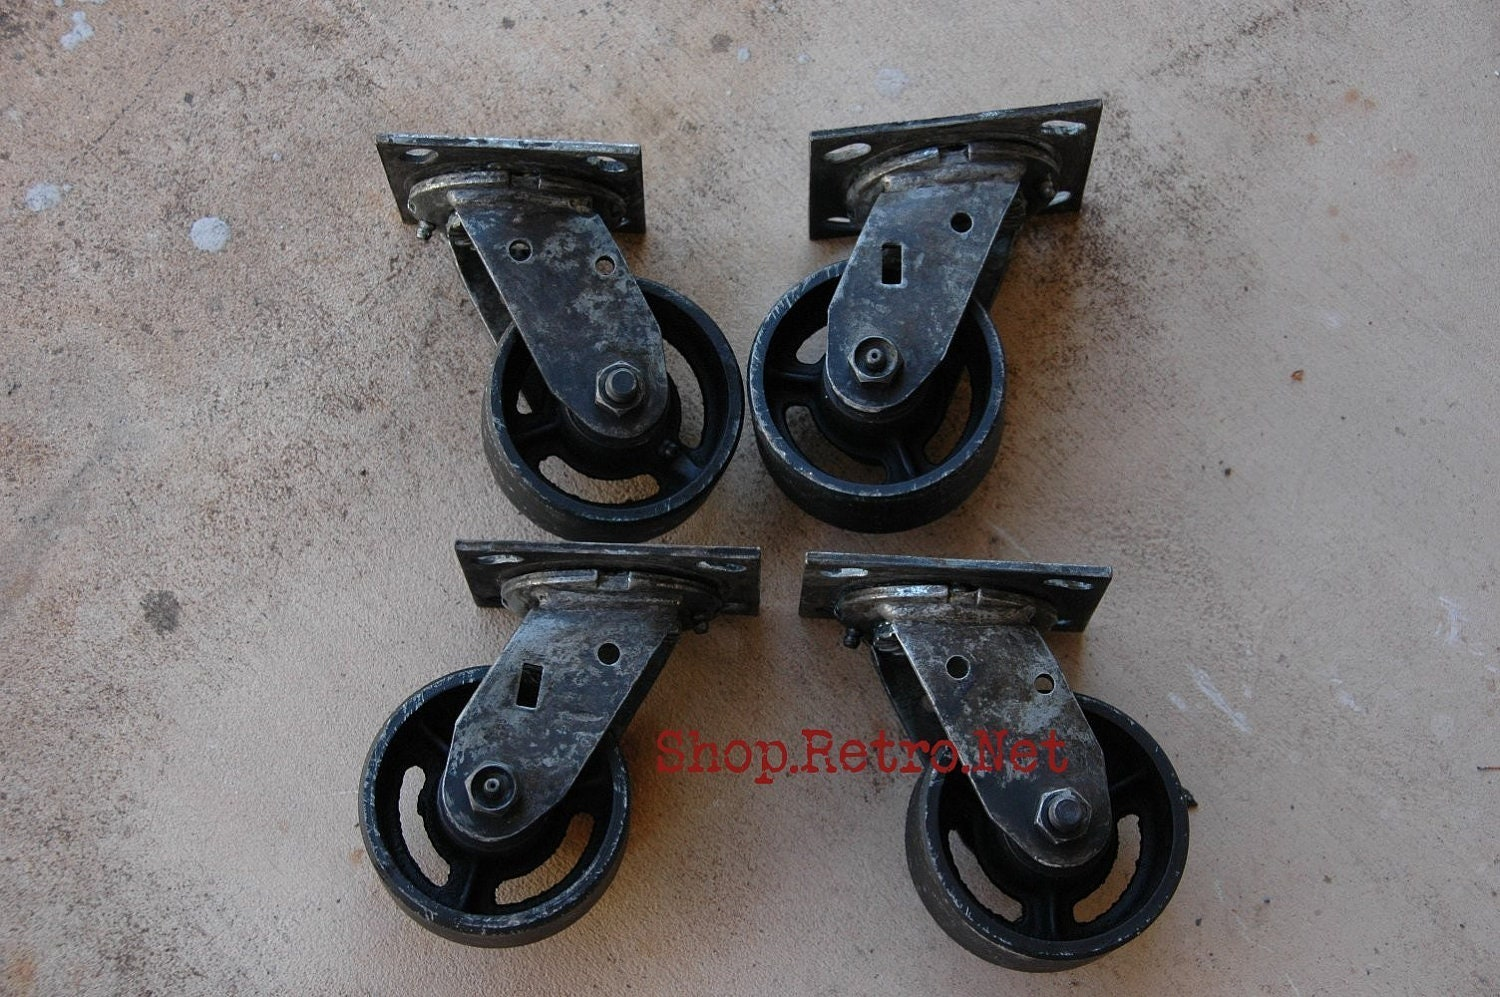 4 vintage industrial caster set antique industrial. Black Bedroom Furniture Sets. Home Design Ideas